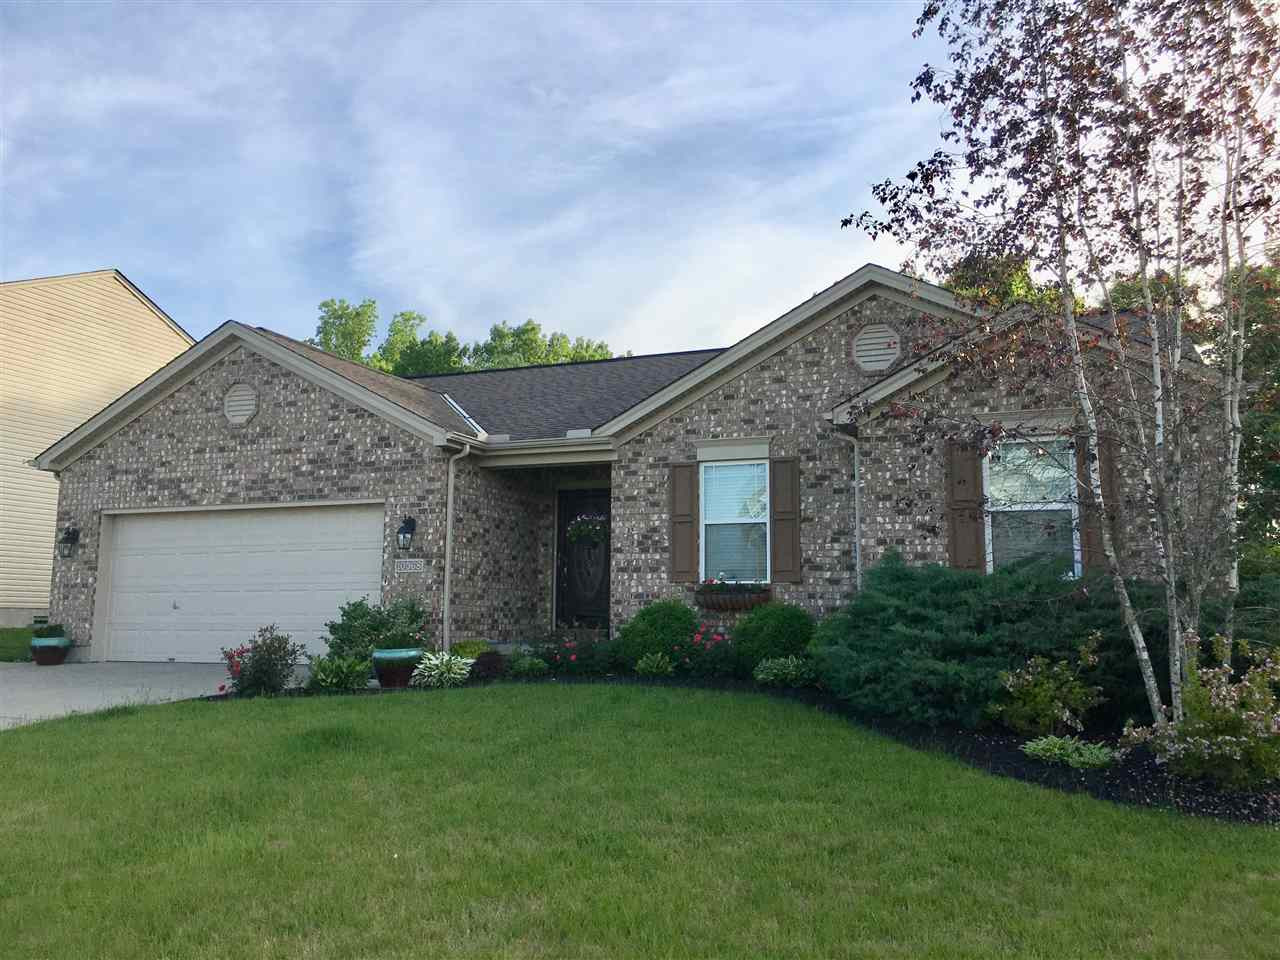 Photo 1 for 10568 Pepperwood Dr Independence, KY 41051